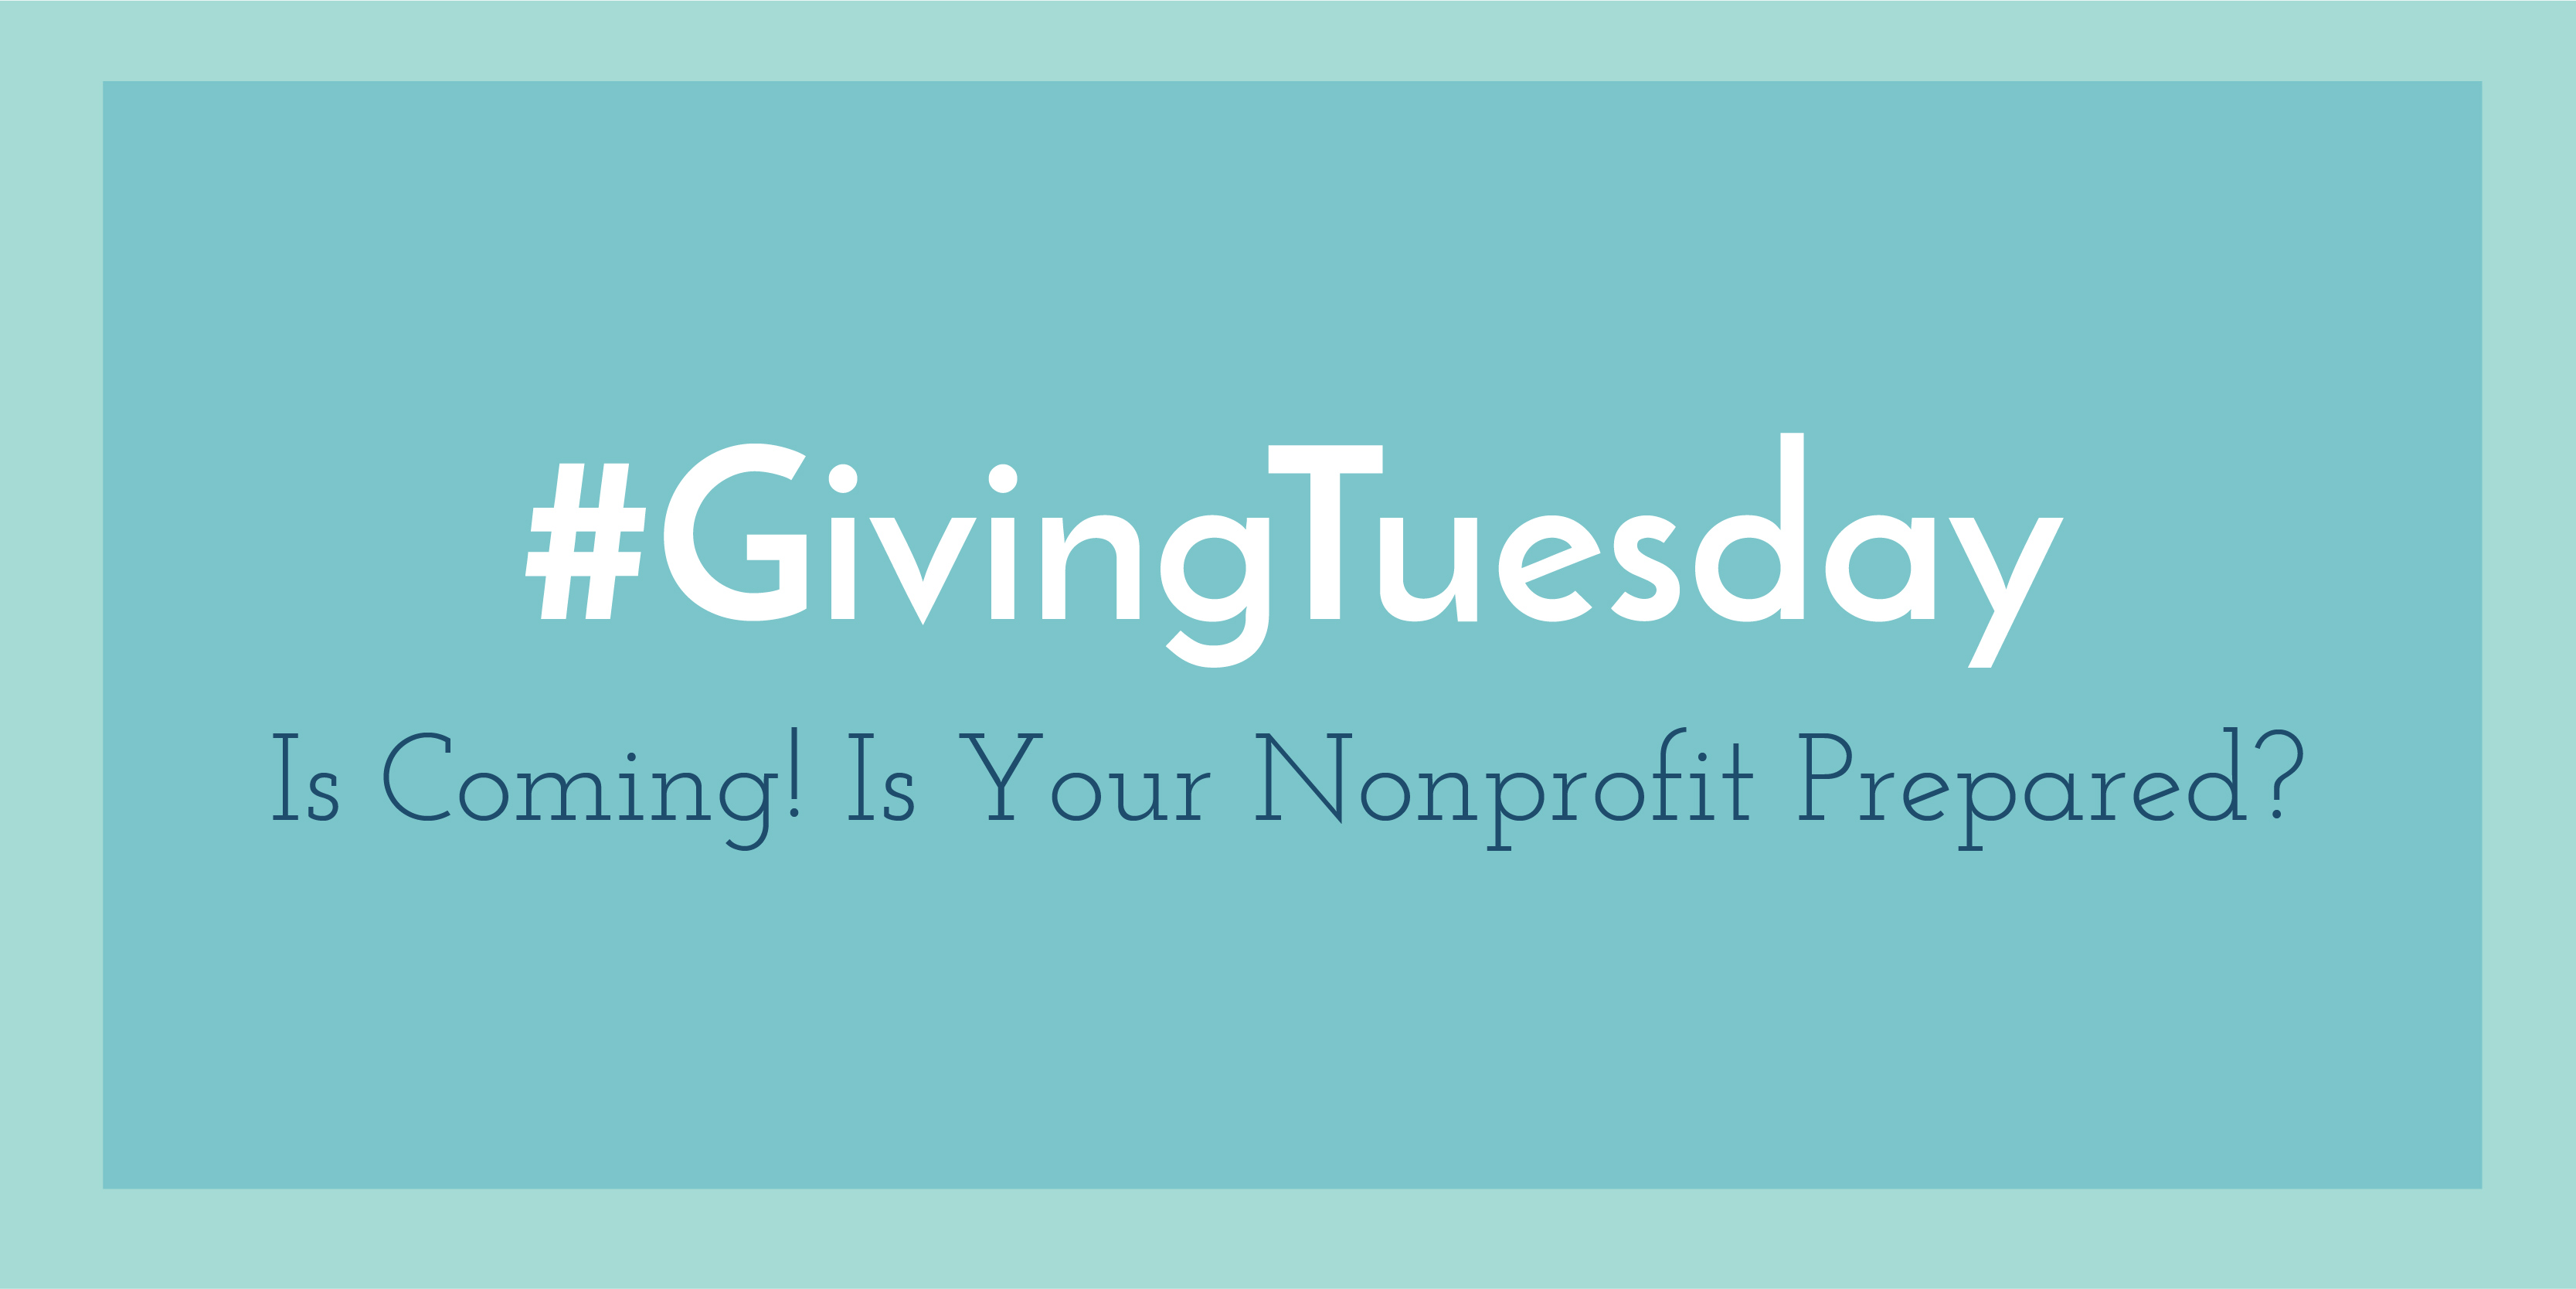 Giving Tuesday is coming!